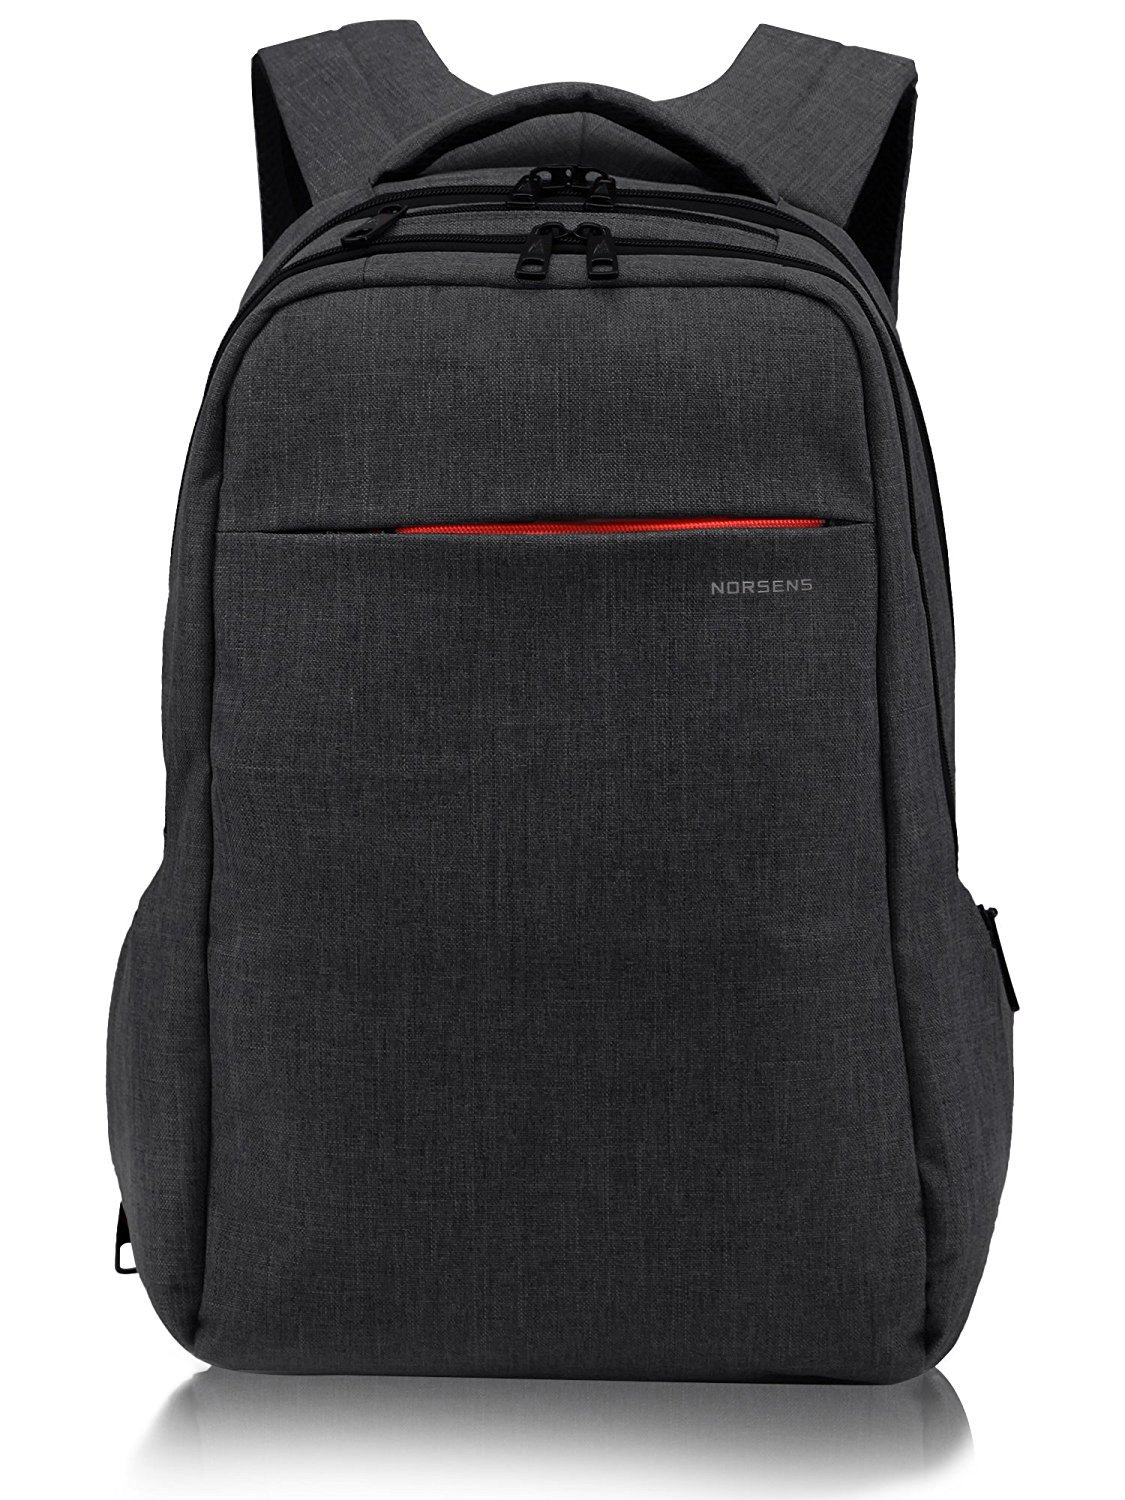 fa4619b3f2e6 NORSENS Lightweight Laptop Backpacks 15.6inch Slim Business Backpack for  Laptop/Notebook/Computer product